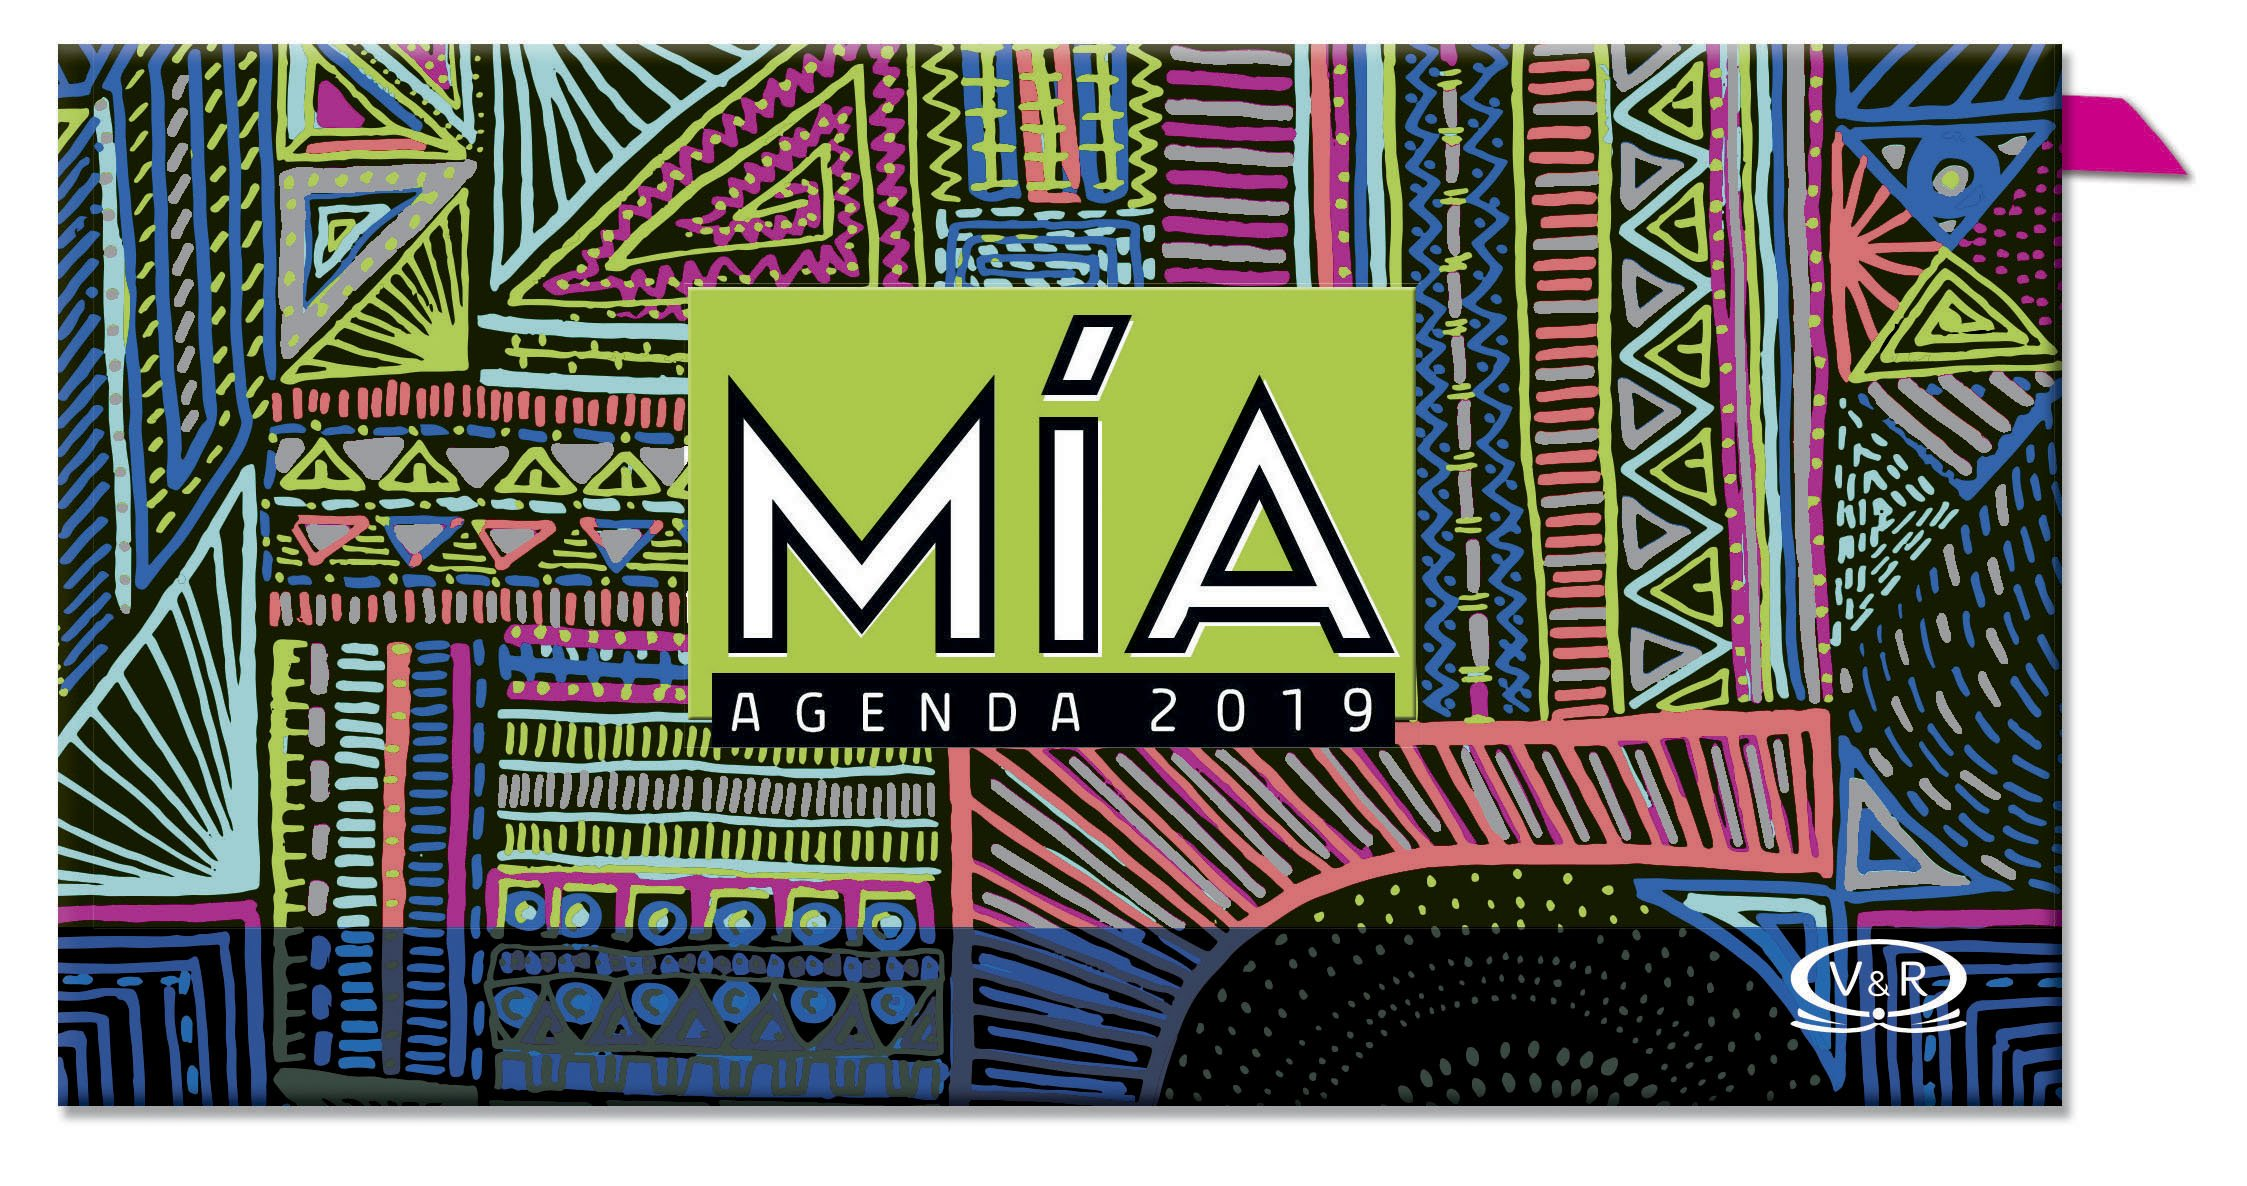 AGENDA MIA 2019: SIN AUTOR: 7798083705495: Amazon.com: Books